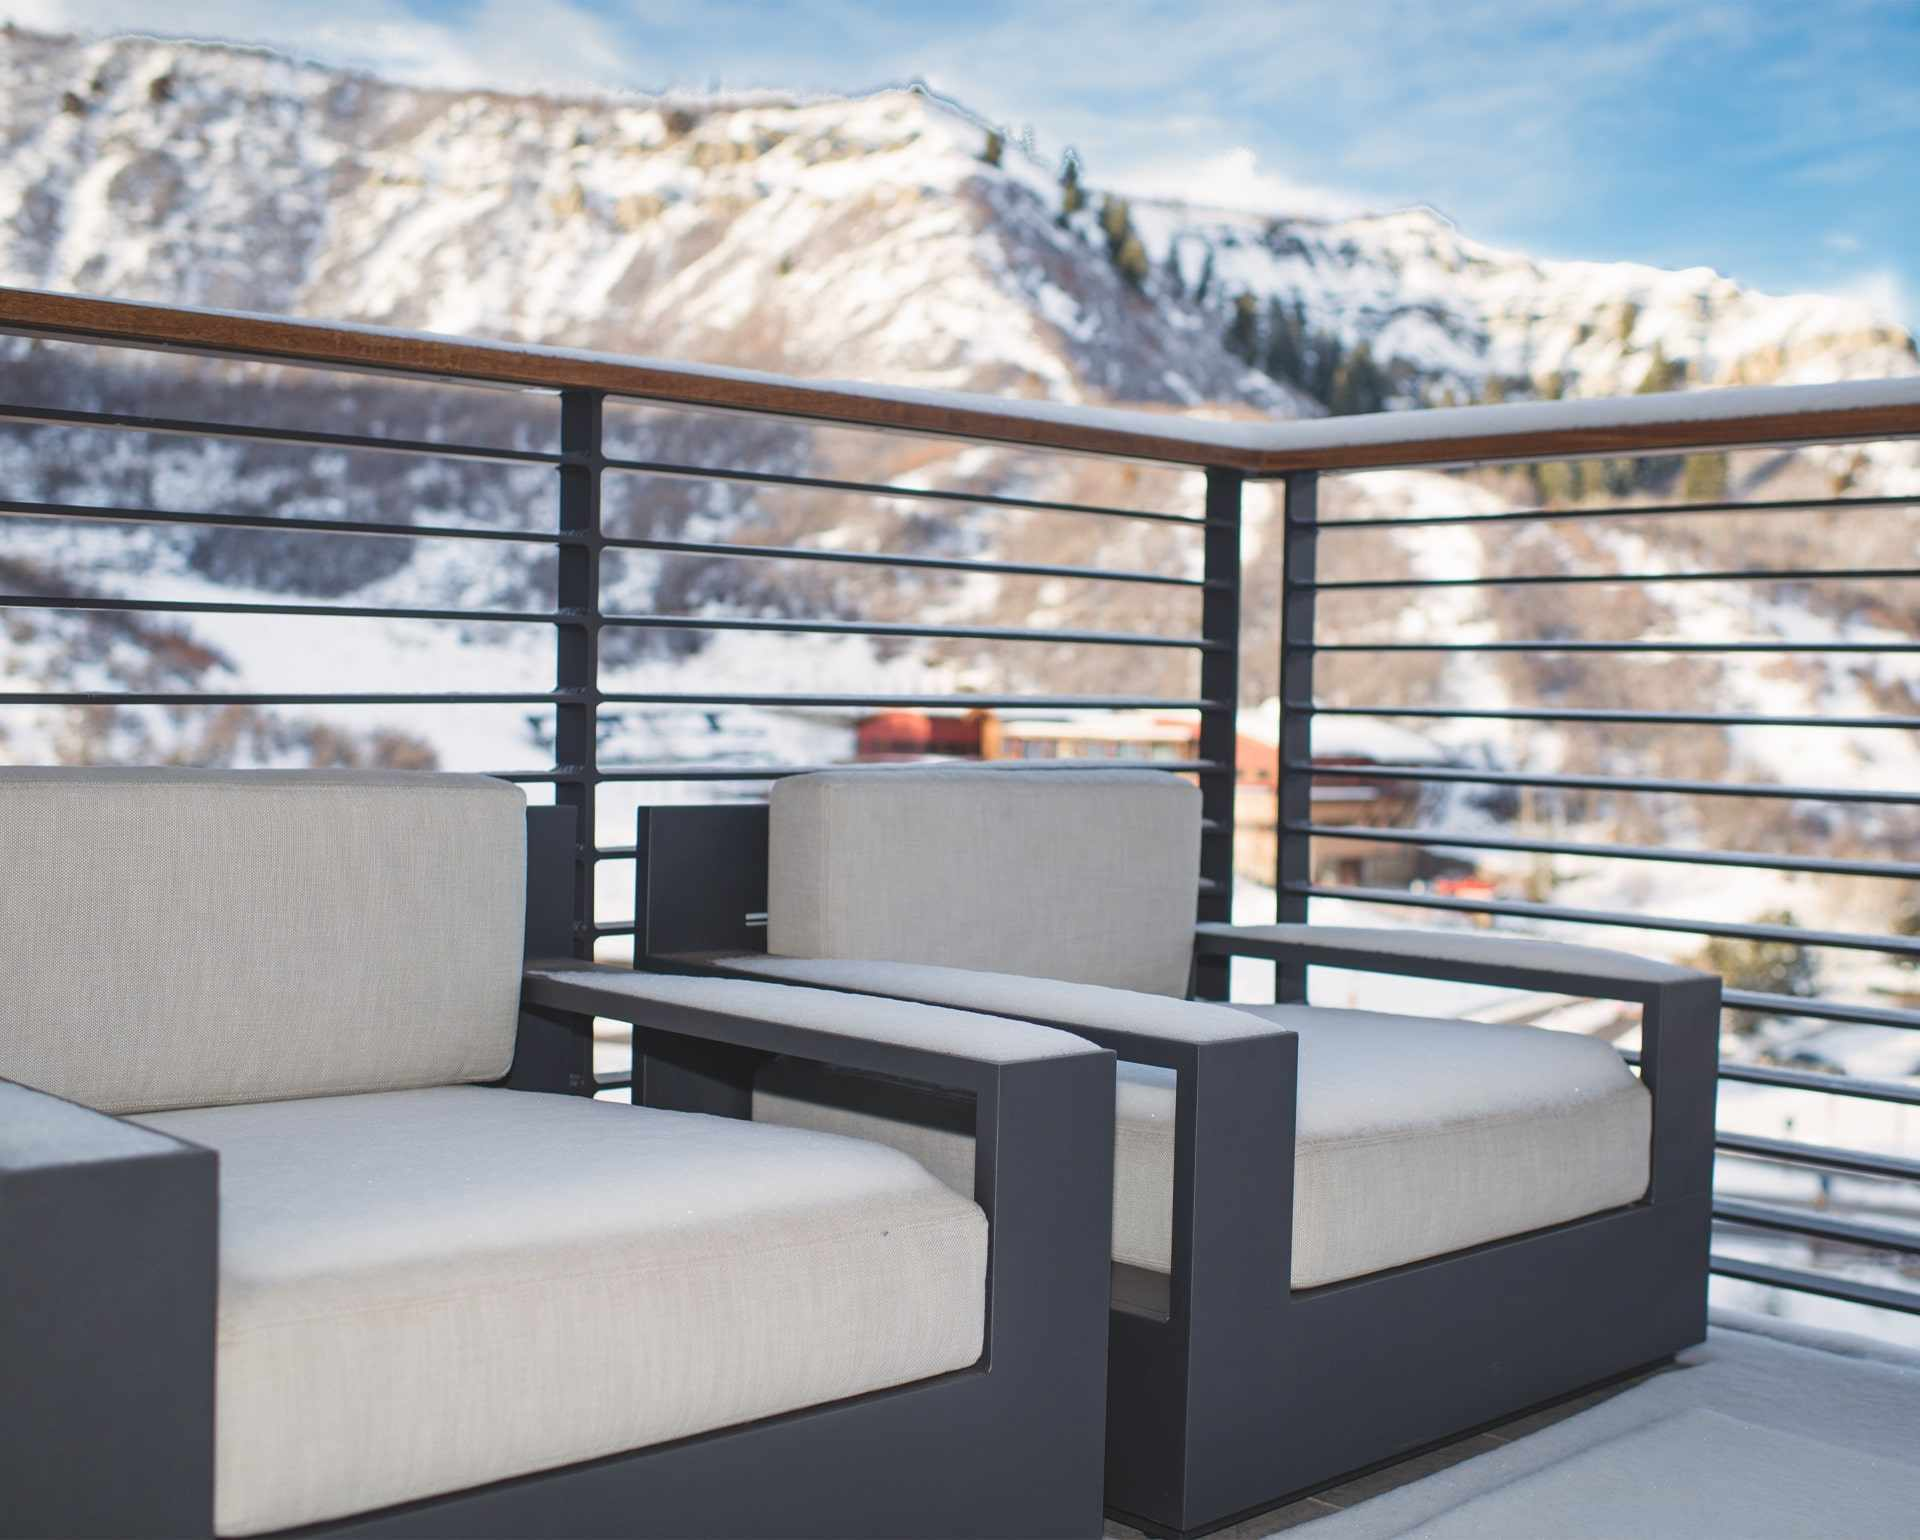 Featured Balconies - Some residences feature additional outdoor living space perfect for al fresco dining, relaxing, and soaking in the mountain views.